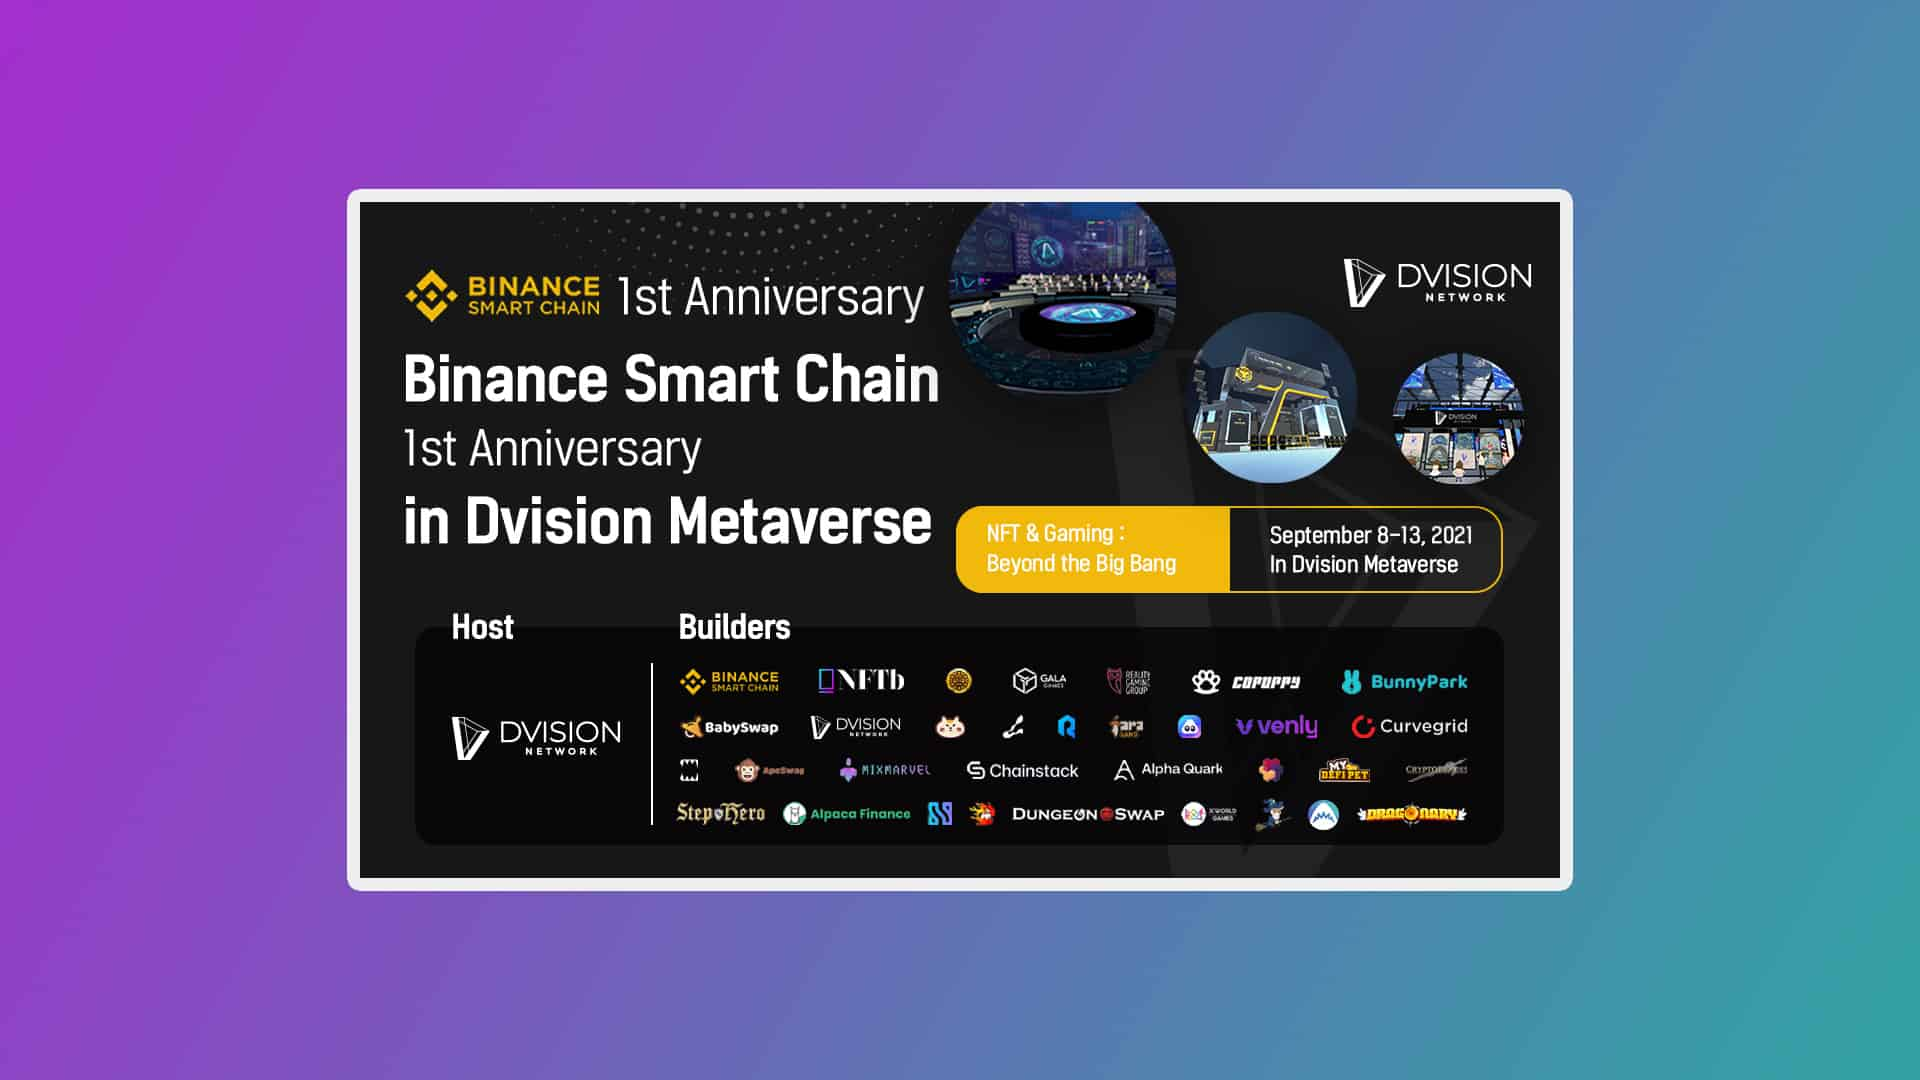 Dvision network binance smart chain conference